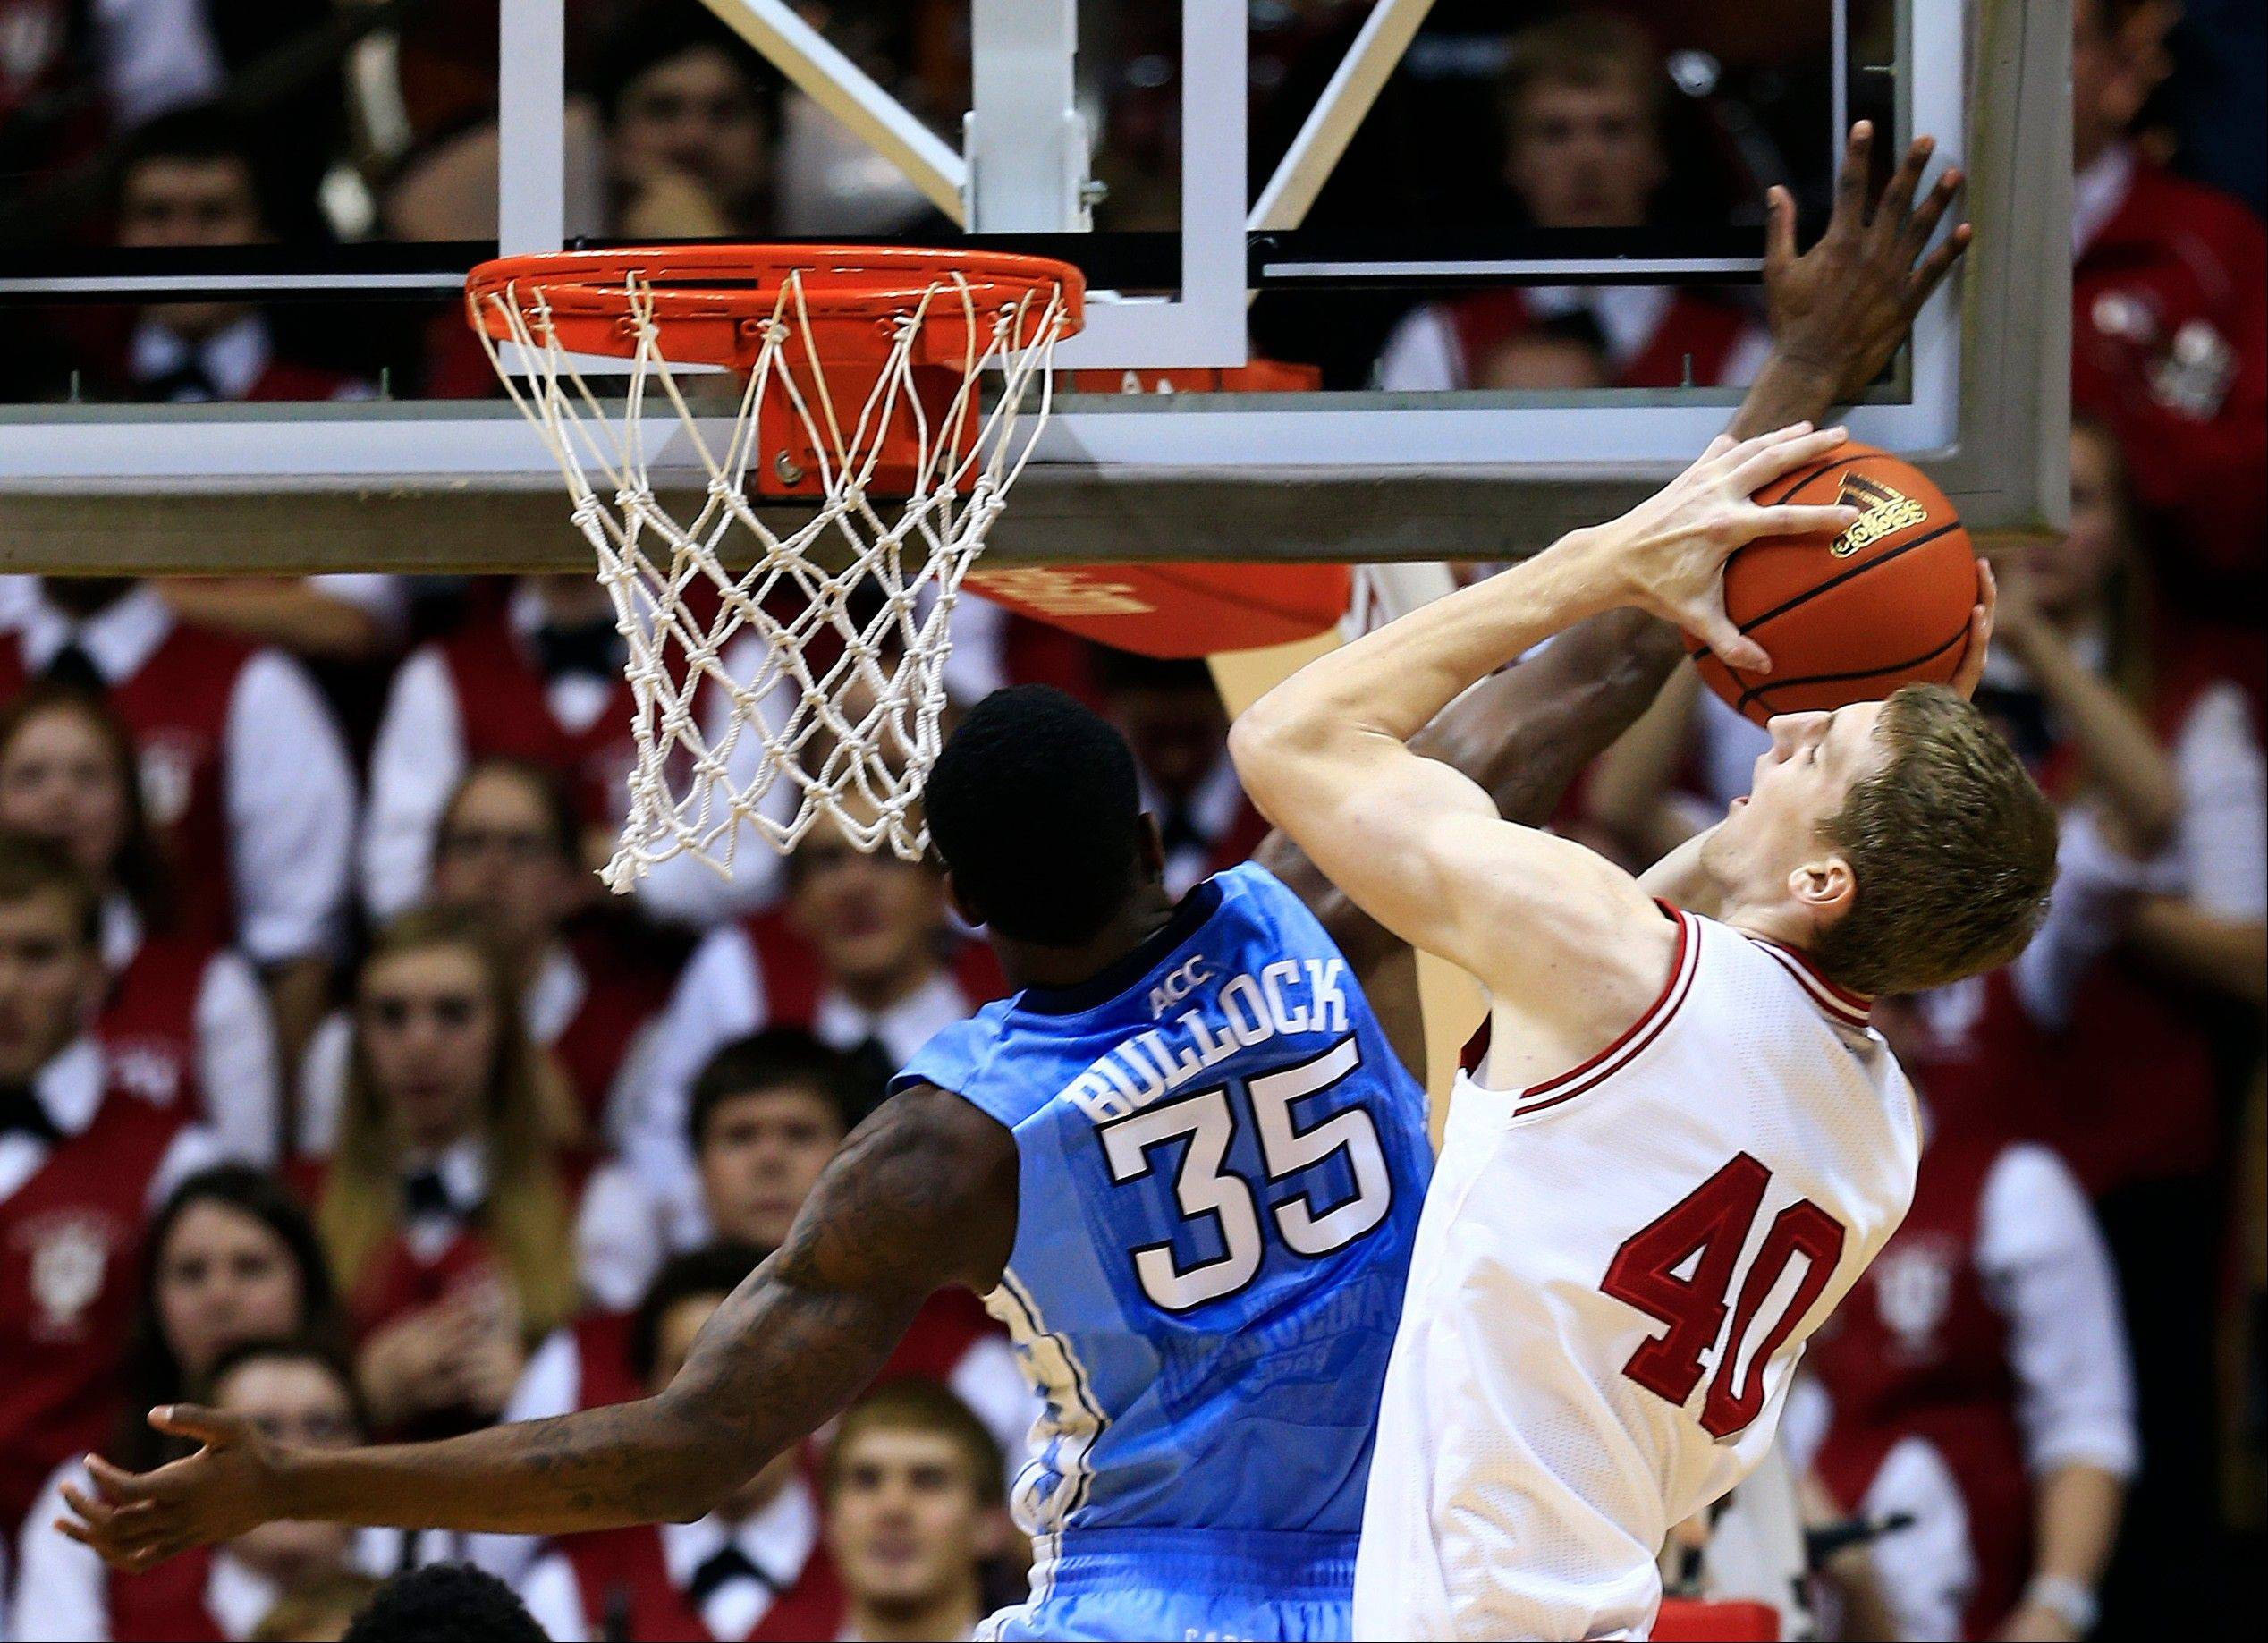 Indiana's Cody Zeller is fouled by North Carolina's Reggie Bullock as he goes up for a shot Tuesday during the first half in Bloomington, Ind.